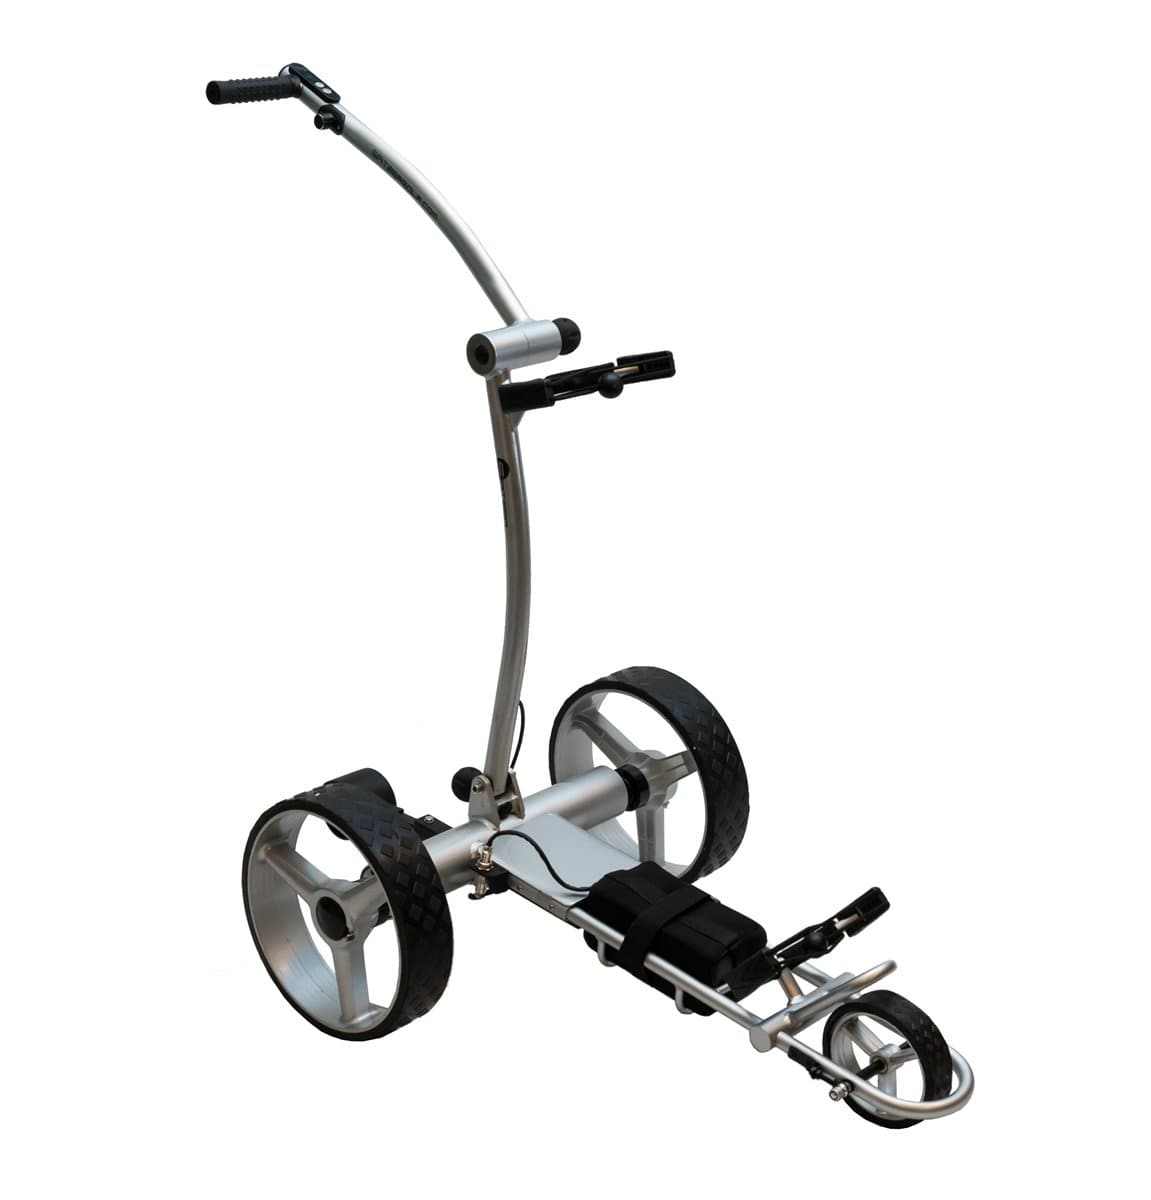 Spitzer RL 150 Remote Controlled Caddy - Perceptive Golfing